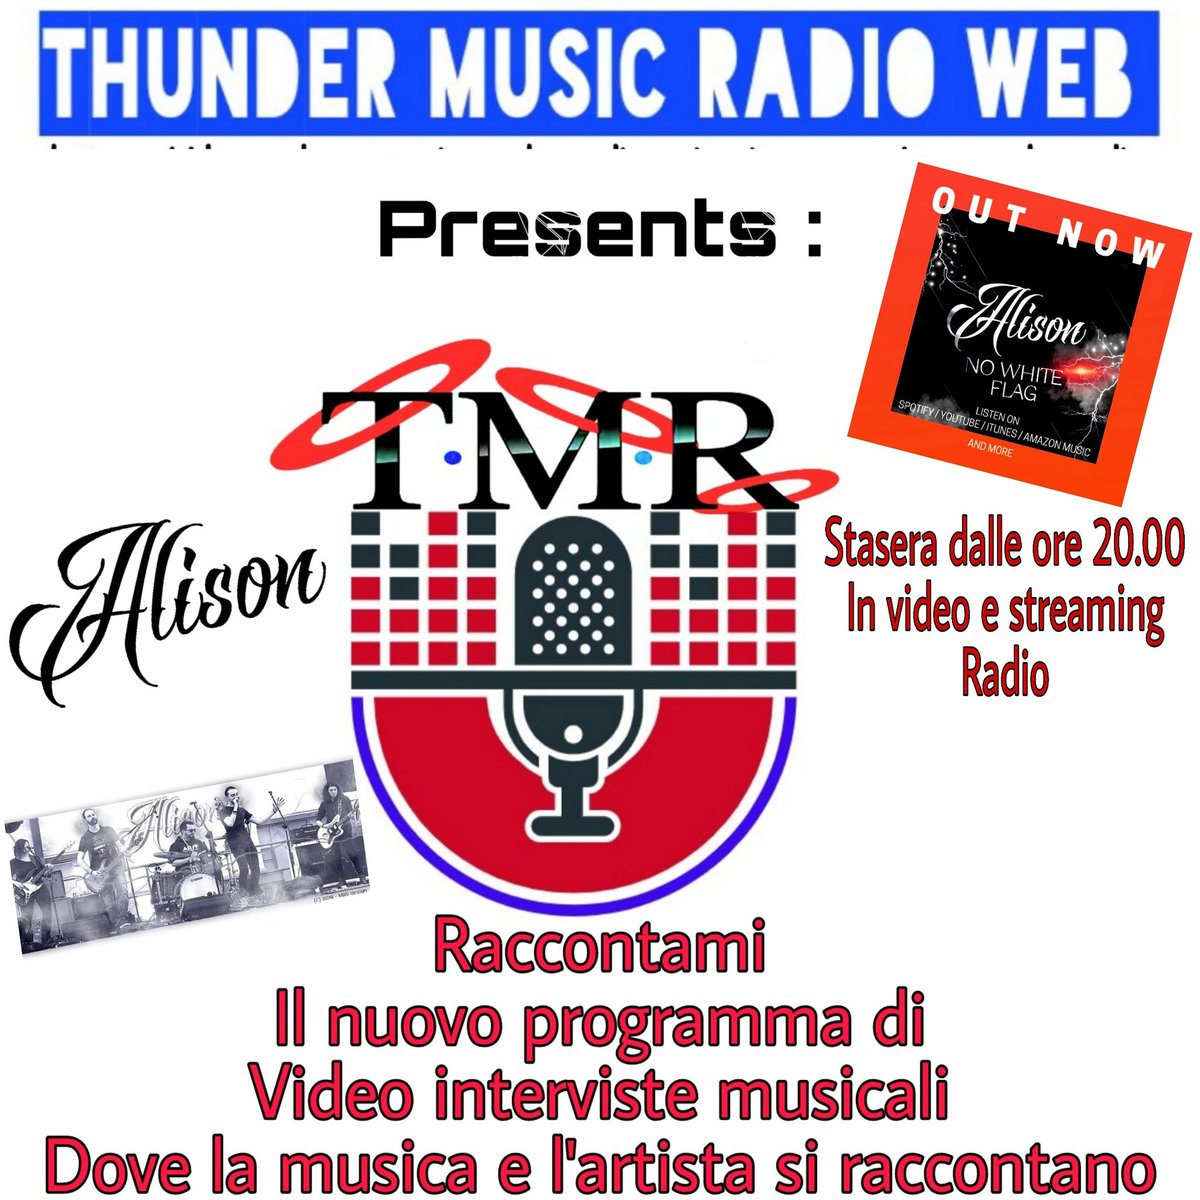 Listen to http://thundermusicjazz.caster.fm/. Tonight at 08.00 pm in Italy and in the time zone in the United States of America at 02.00 pm there will be the video interview that you can see on our official Facebook page and also listen to live radio from the Rock band Alison. pic.twitter.com/nVuybG72x4